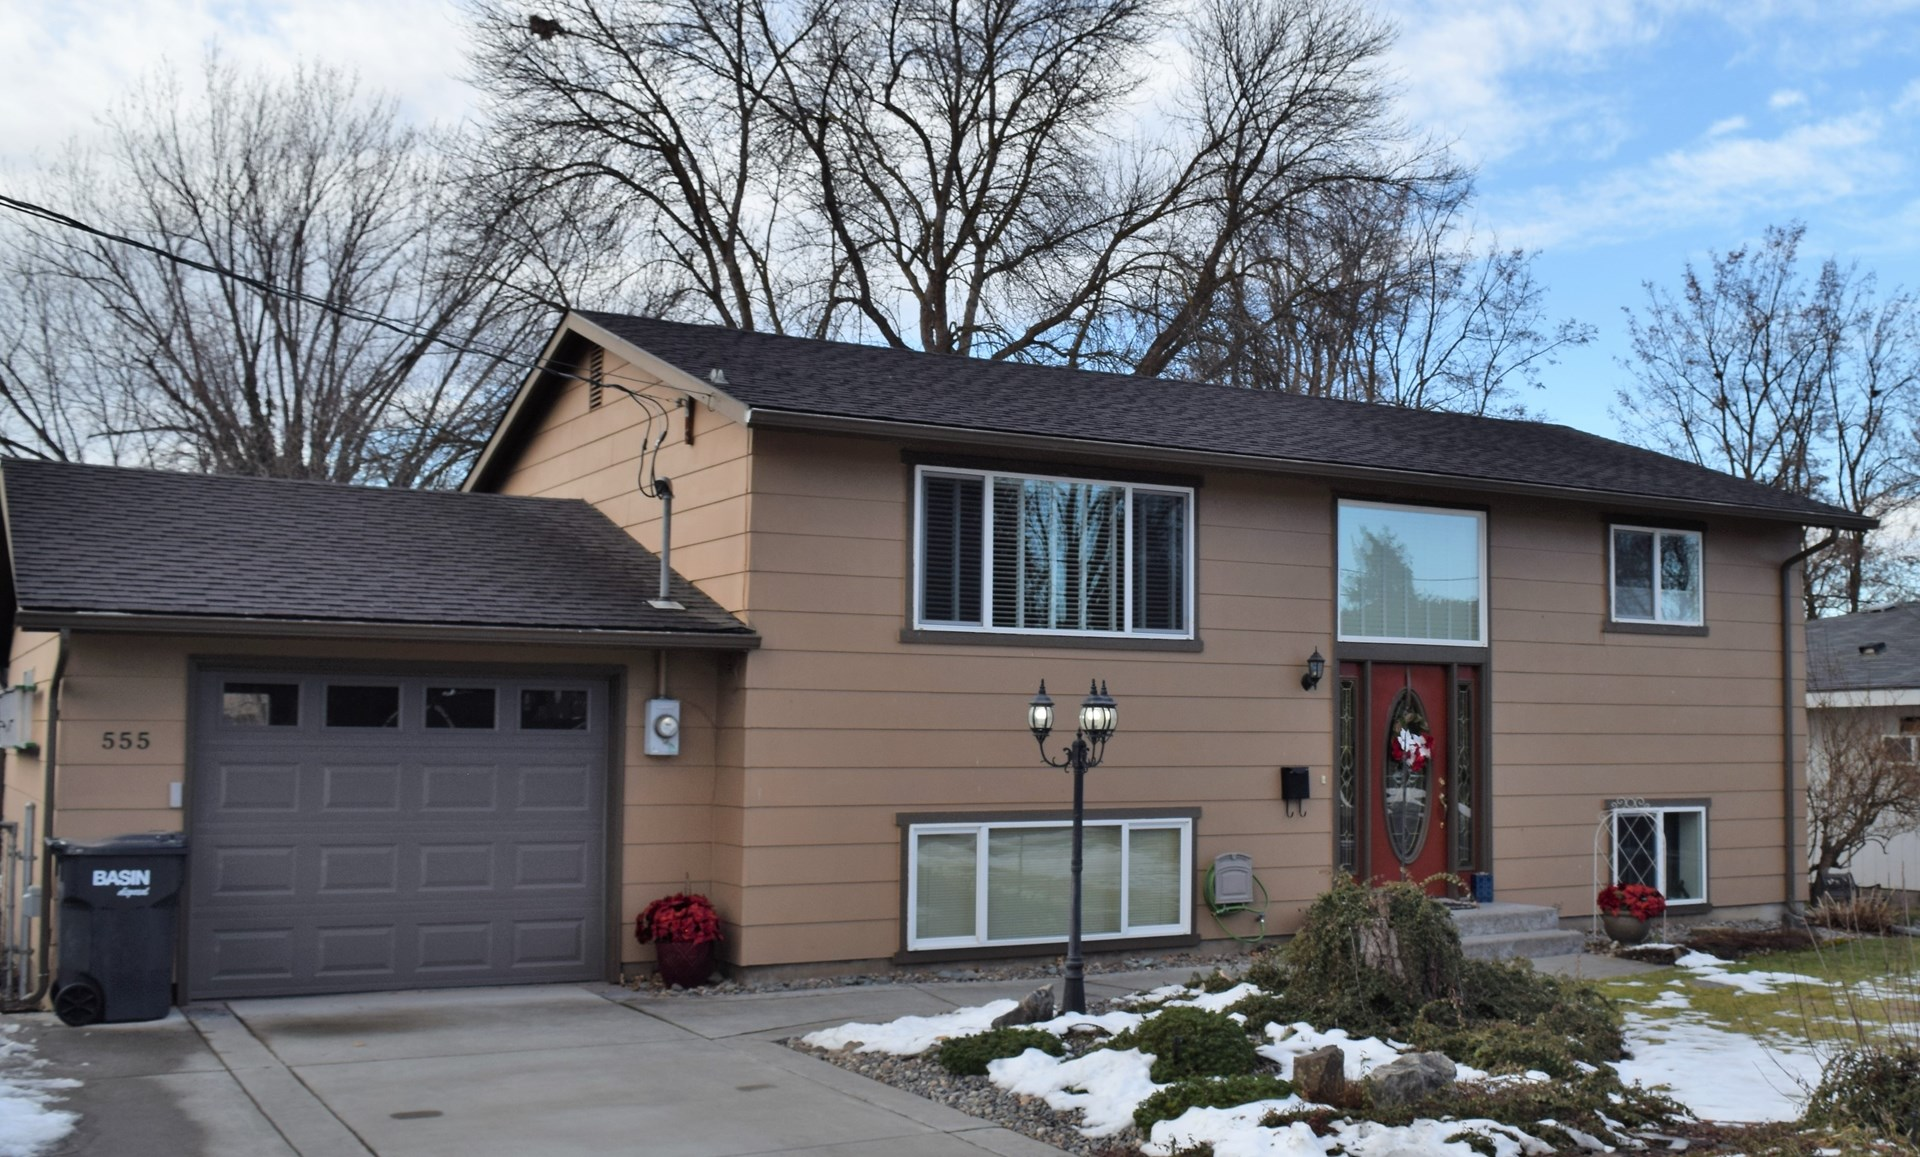 Home for Sale in College Place near Parks and Schools